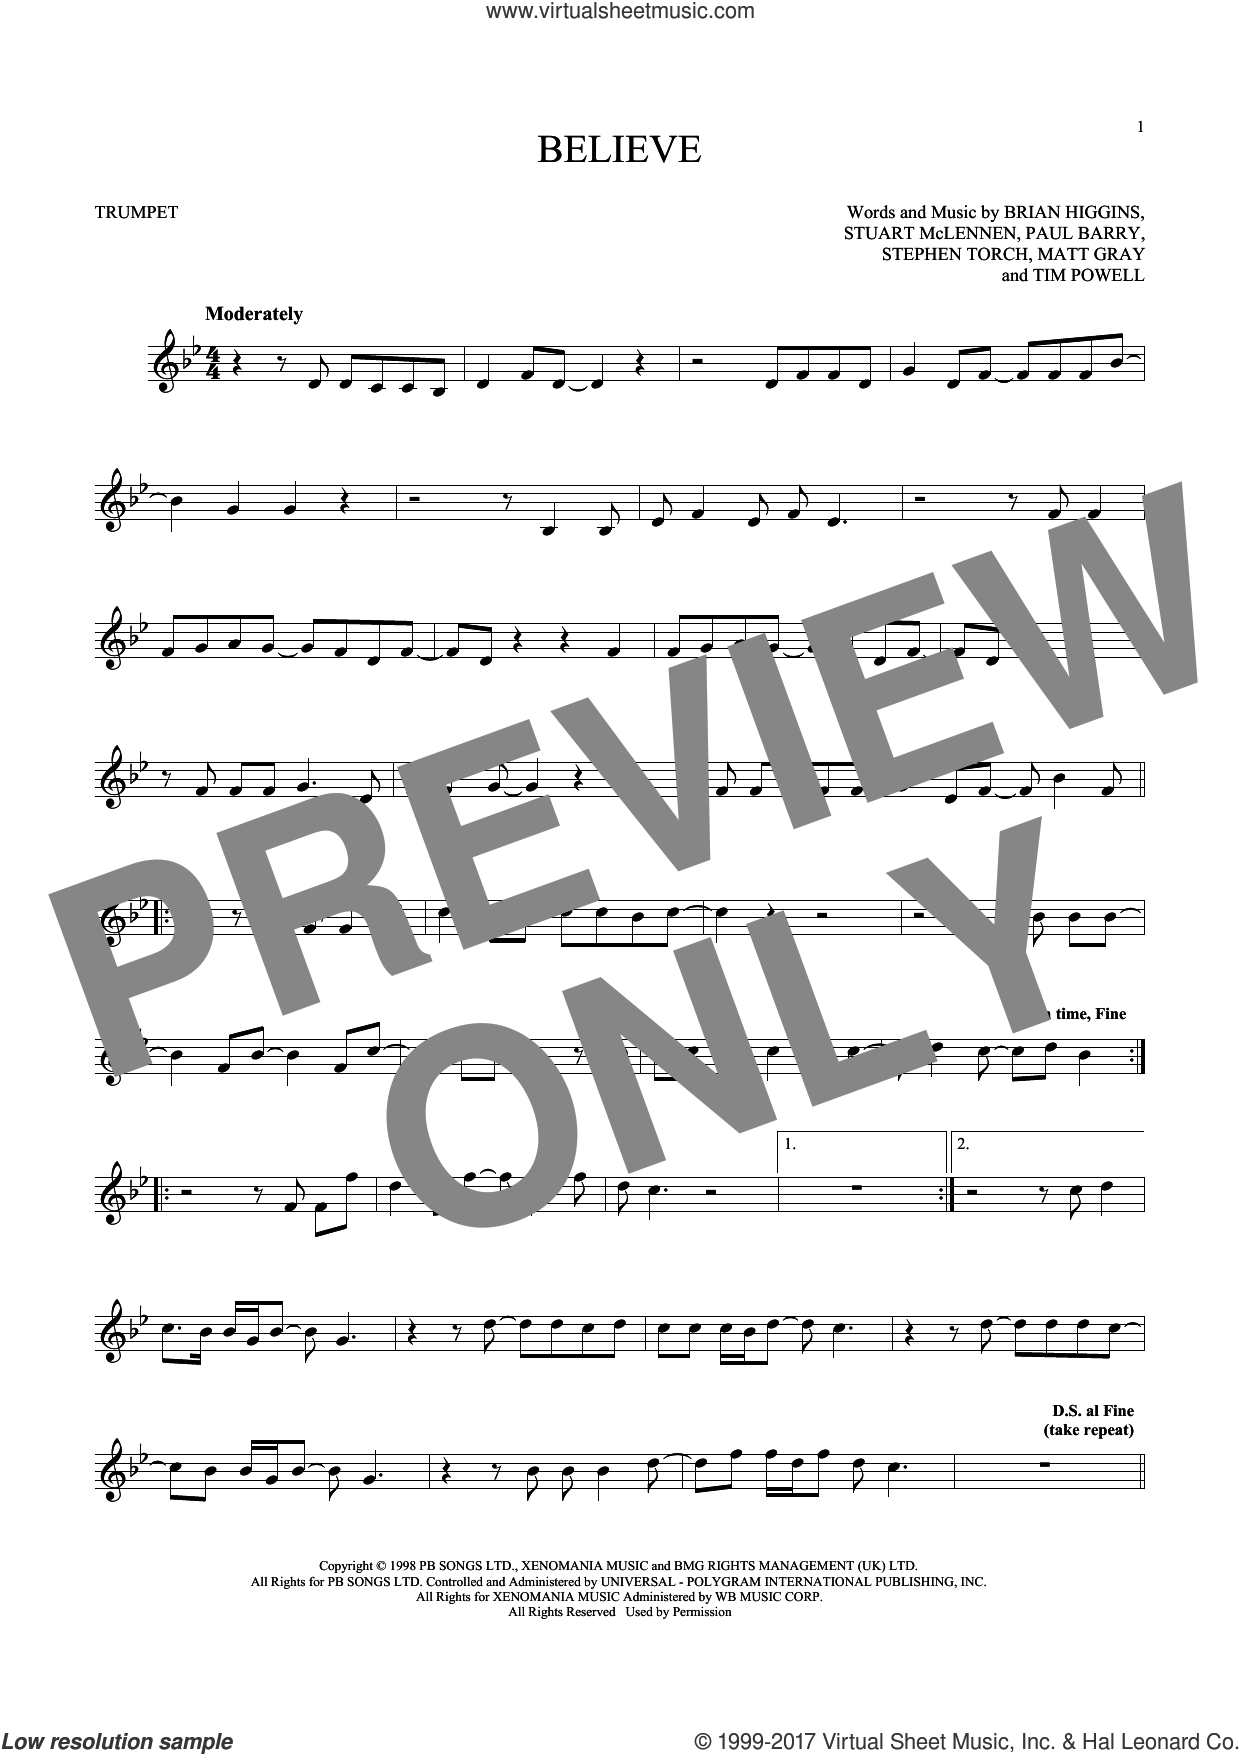 Believe sheet music for trumpet solo by Cher, Brian Higgins, Matt Gray, Paul Barry, Stephen Torch, Stuart McLennen and Timothy Powell, intermediate skill level